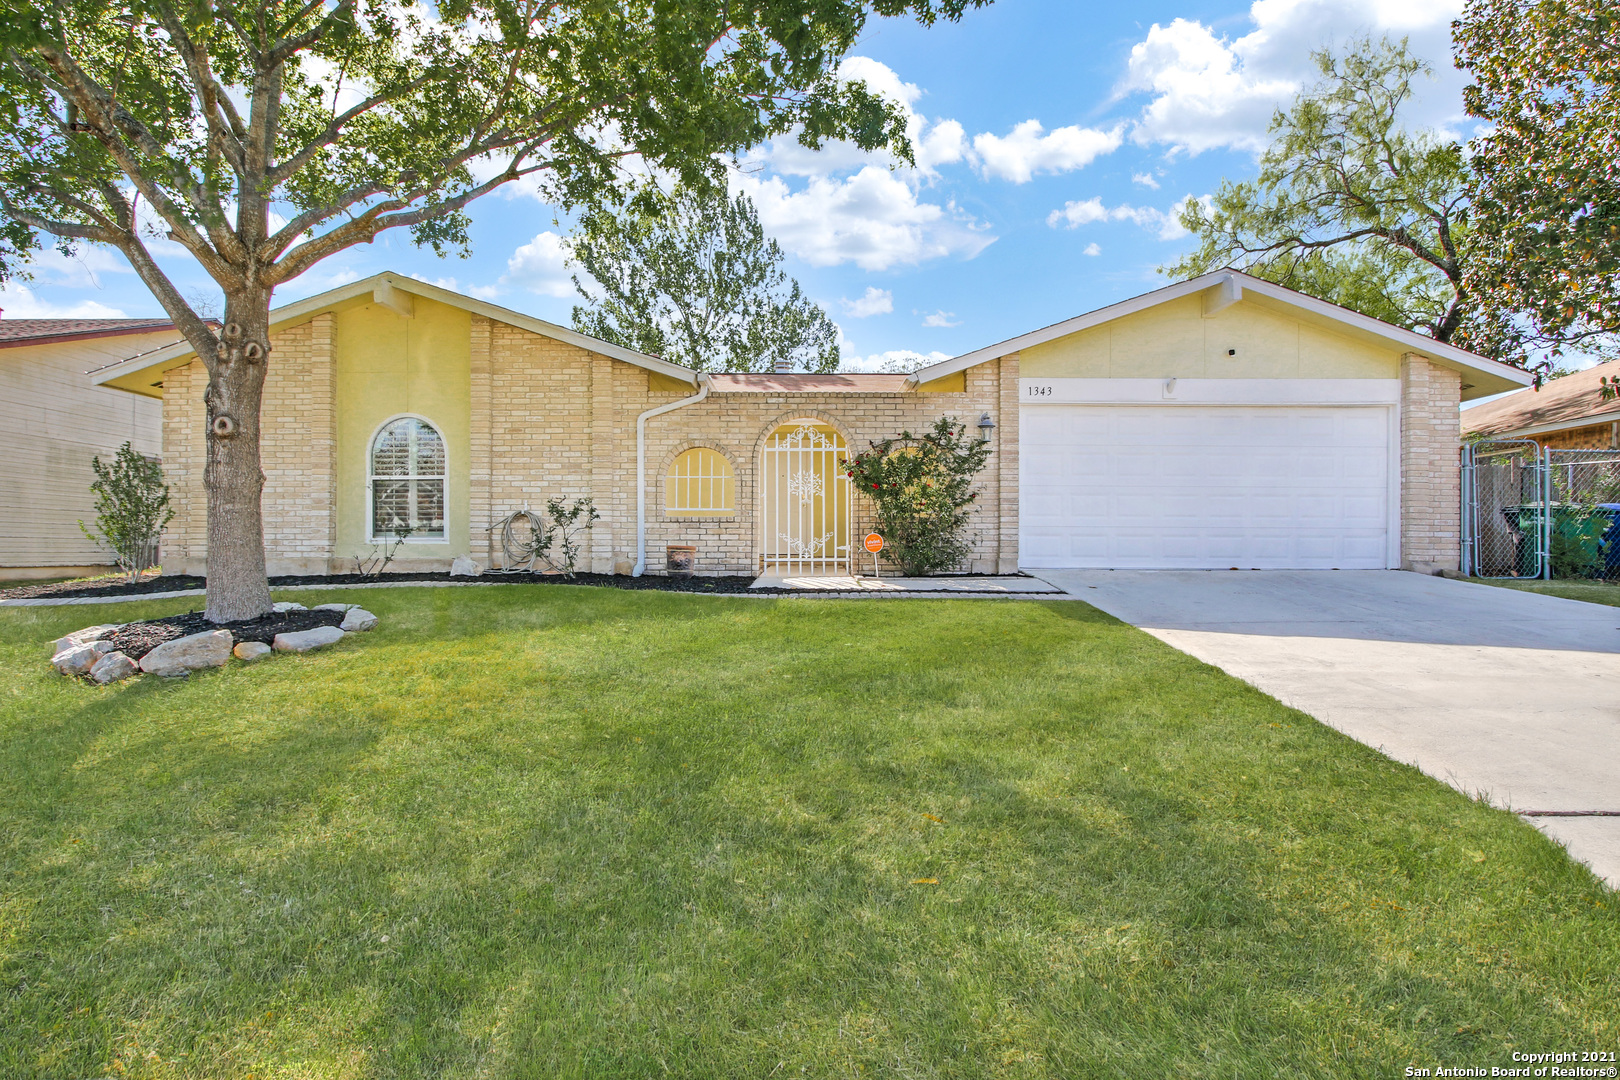 Lovely remodeled one story home w/2 car garage and great curb appeal located in Heritage subdivision